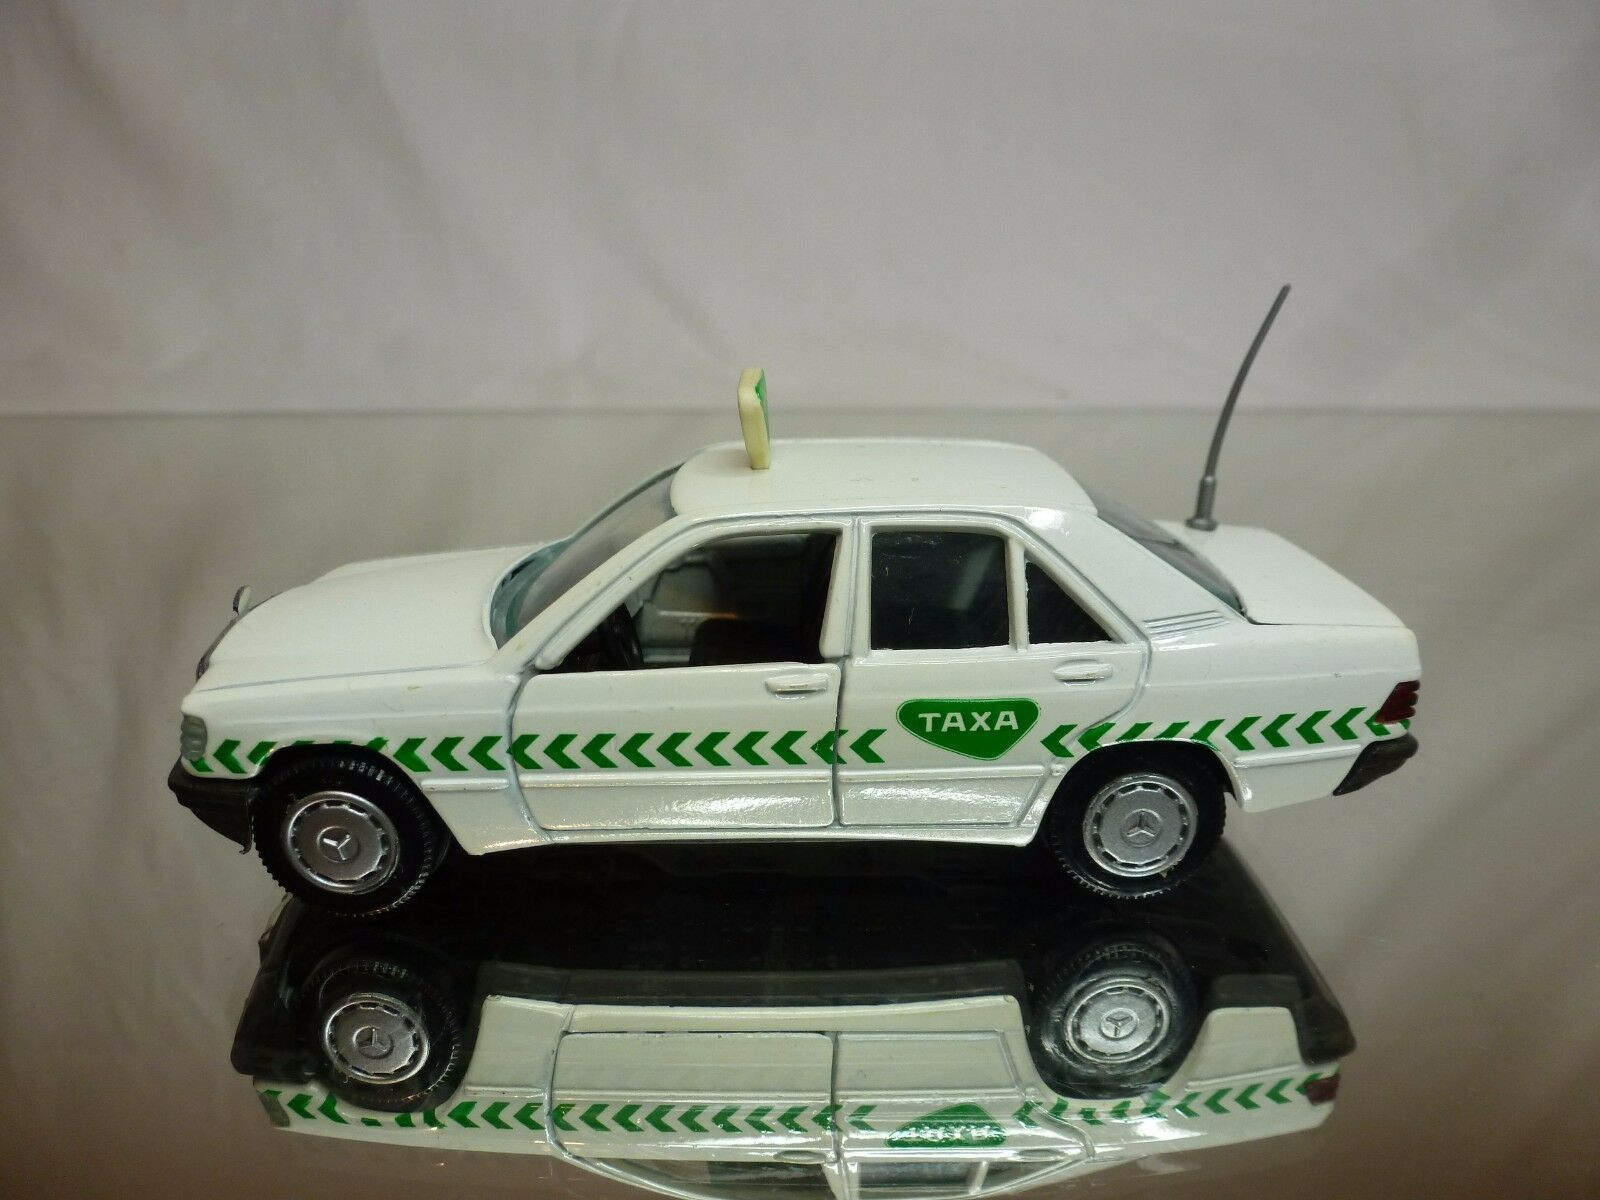 GAMA 1167 MERCEDES BENZ BENZ BENZ 190 190E - TAXA TAXI -  WHITE 1 43 - GOOD CONDITION 65b665